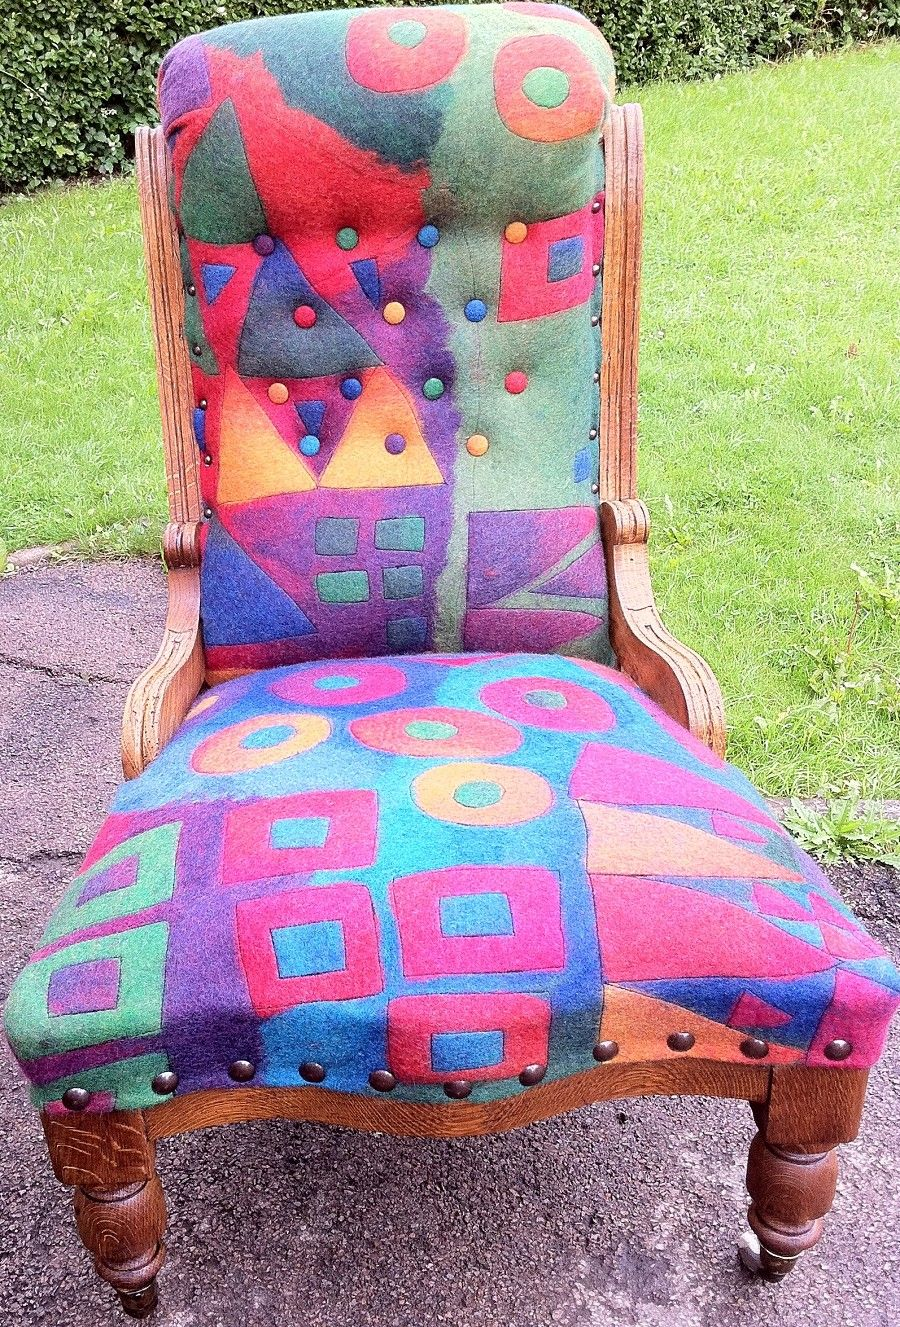 Awesome felted chair